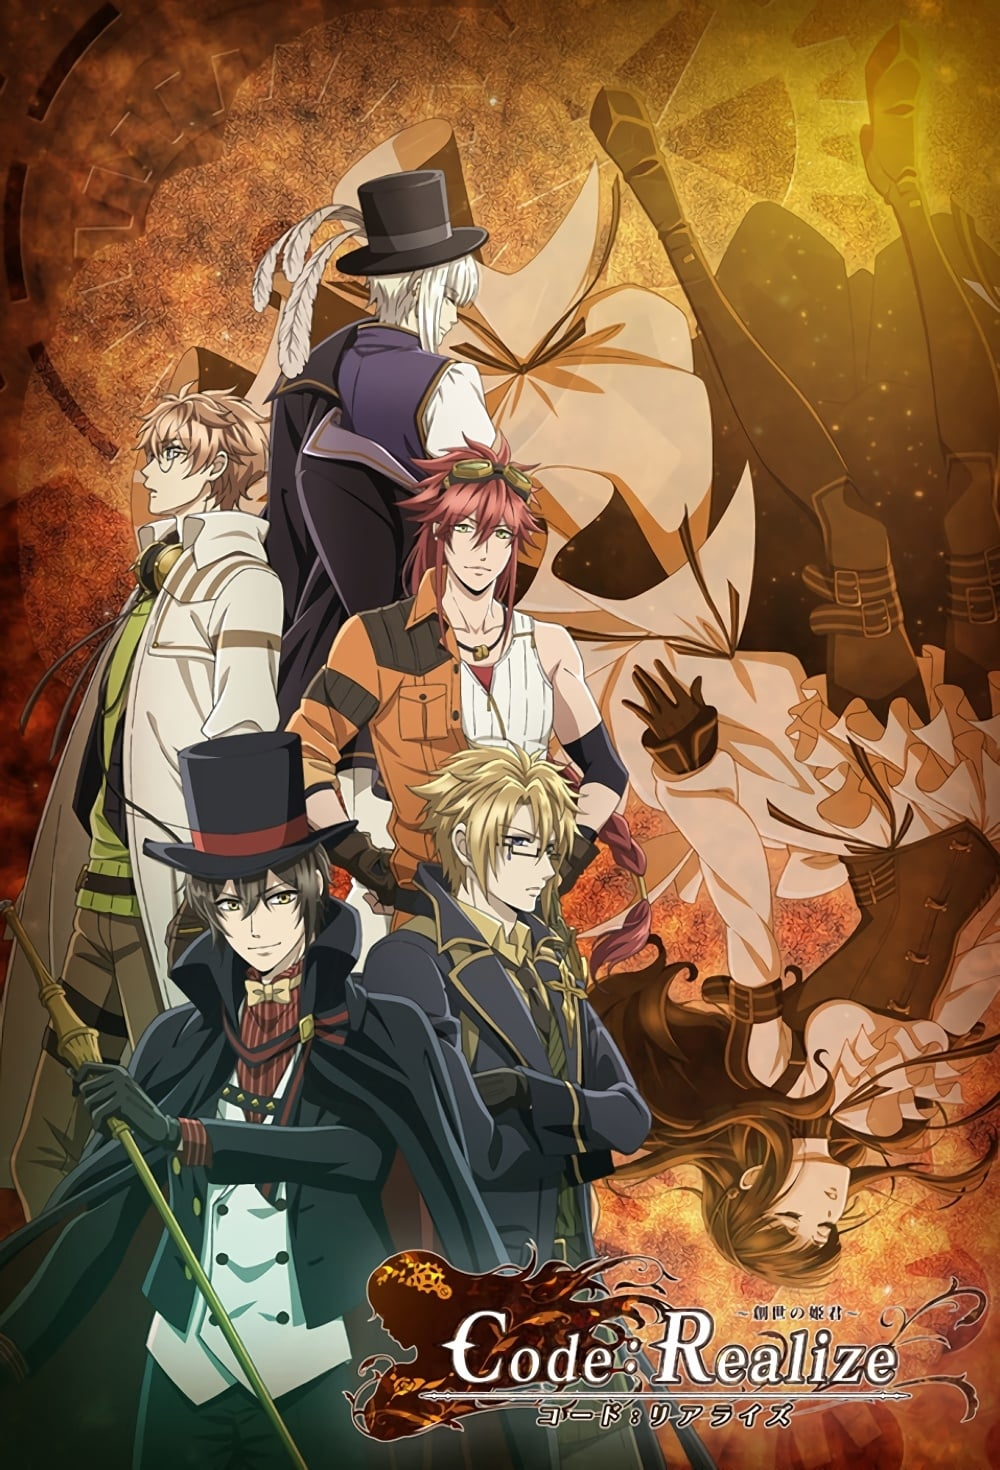 Code:Realize (2017)